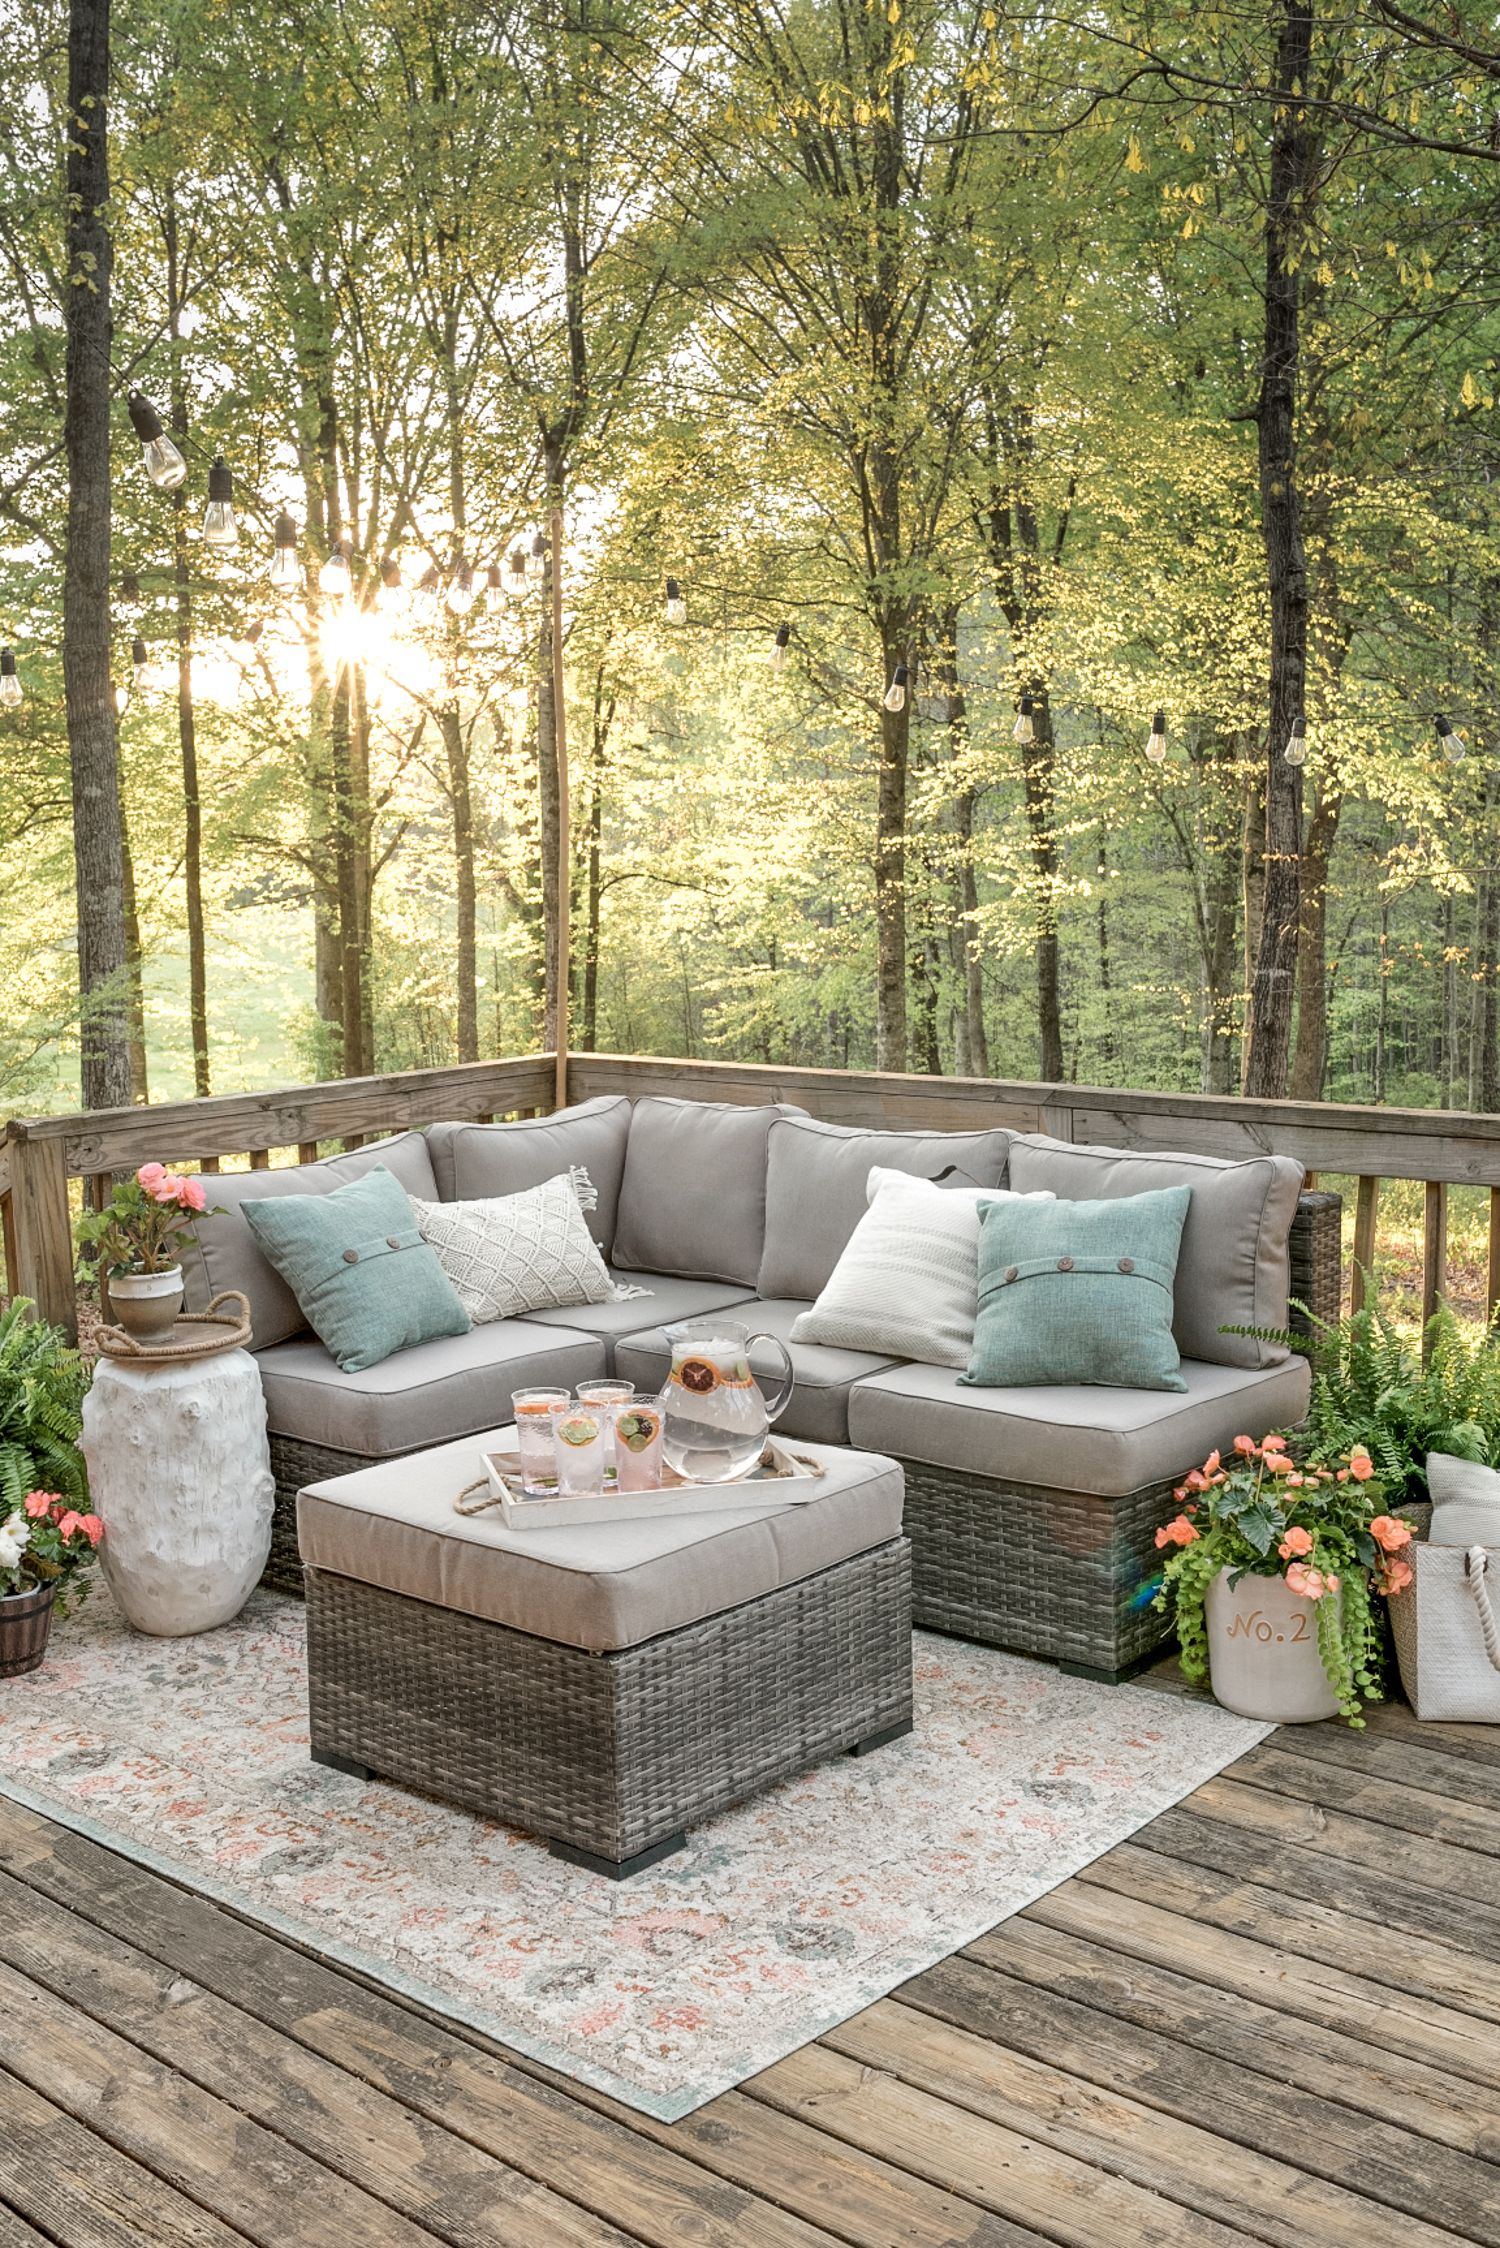 Outdoor Decorating Ideas Tips On How To Decorate Outdoors Outdoor Patio Space Patio Design Outdoor Deck Decorating